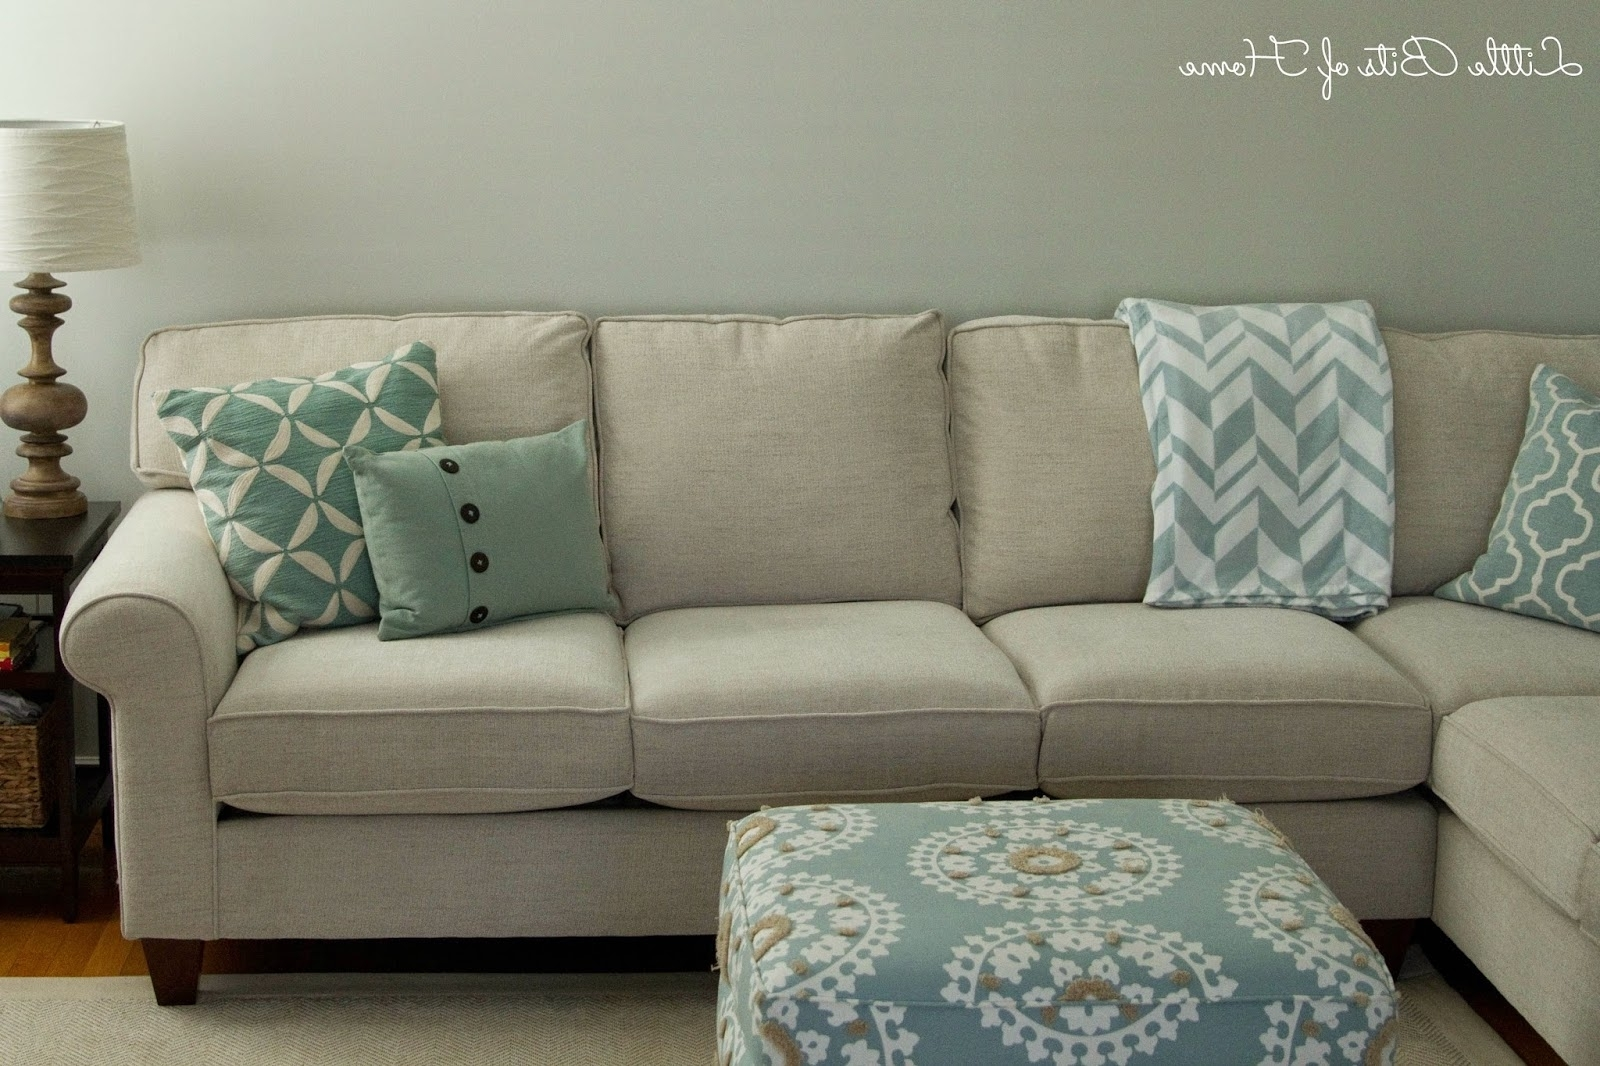 Living Room Makeover: Couch Redo Pertaining To Most Up To Date Sectional Sofas At Havertys (View 5 of 15)